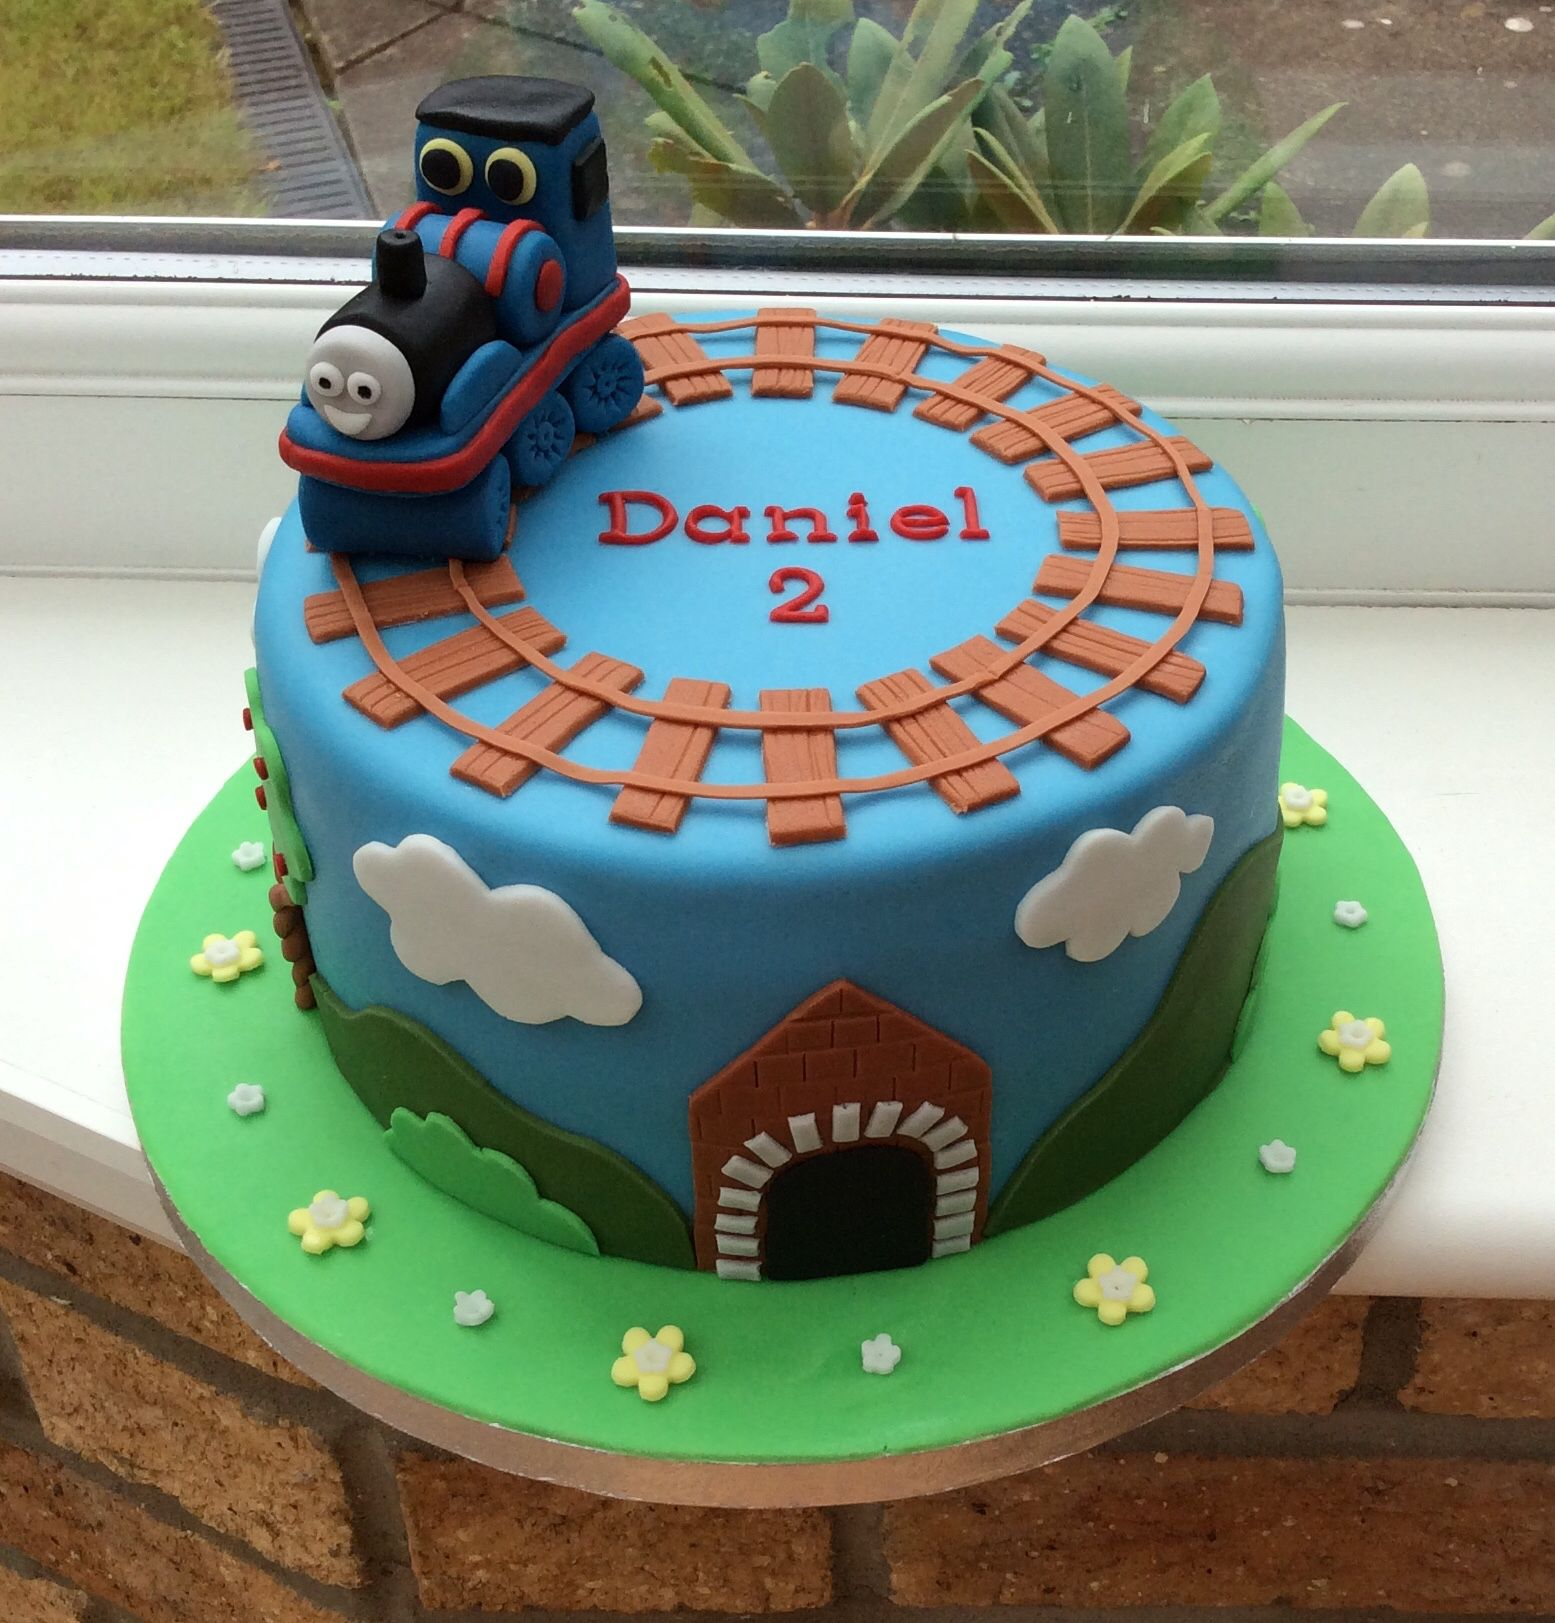 Cake Images Of Thomas The Train : Best 25+ Thomas the tank cake ideas on Pinterest Thomas ...